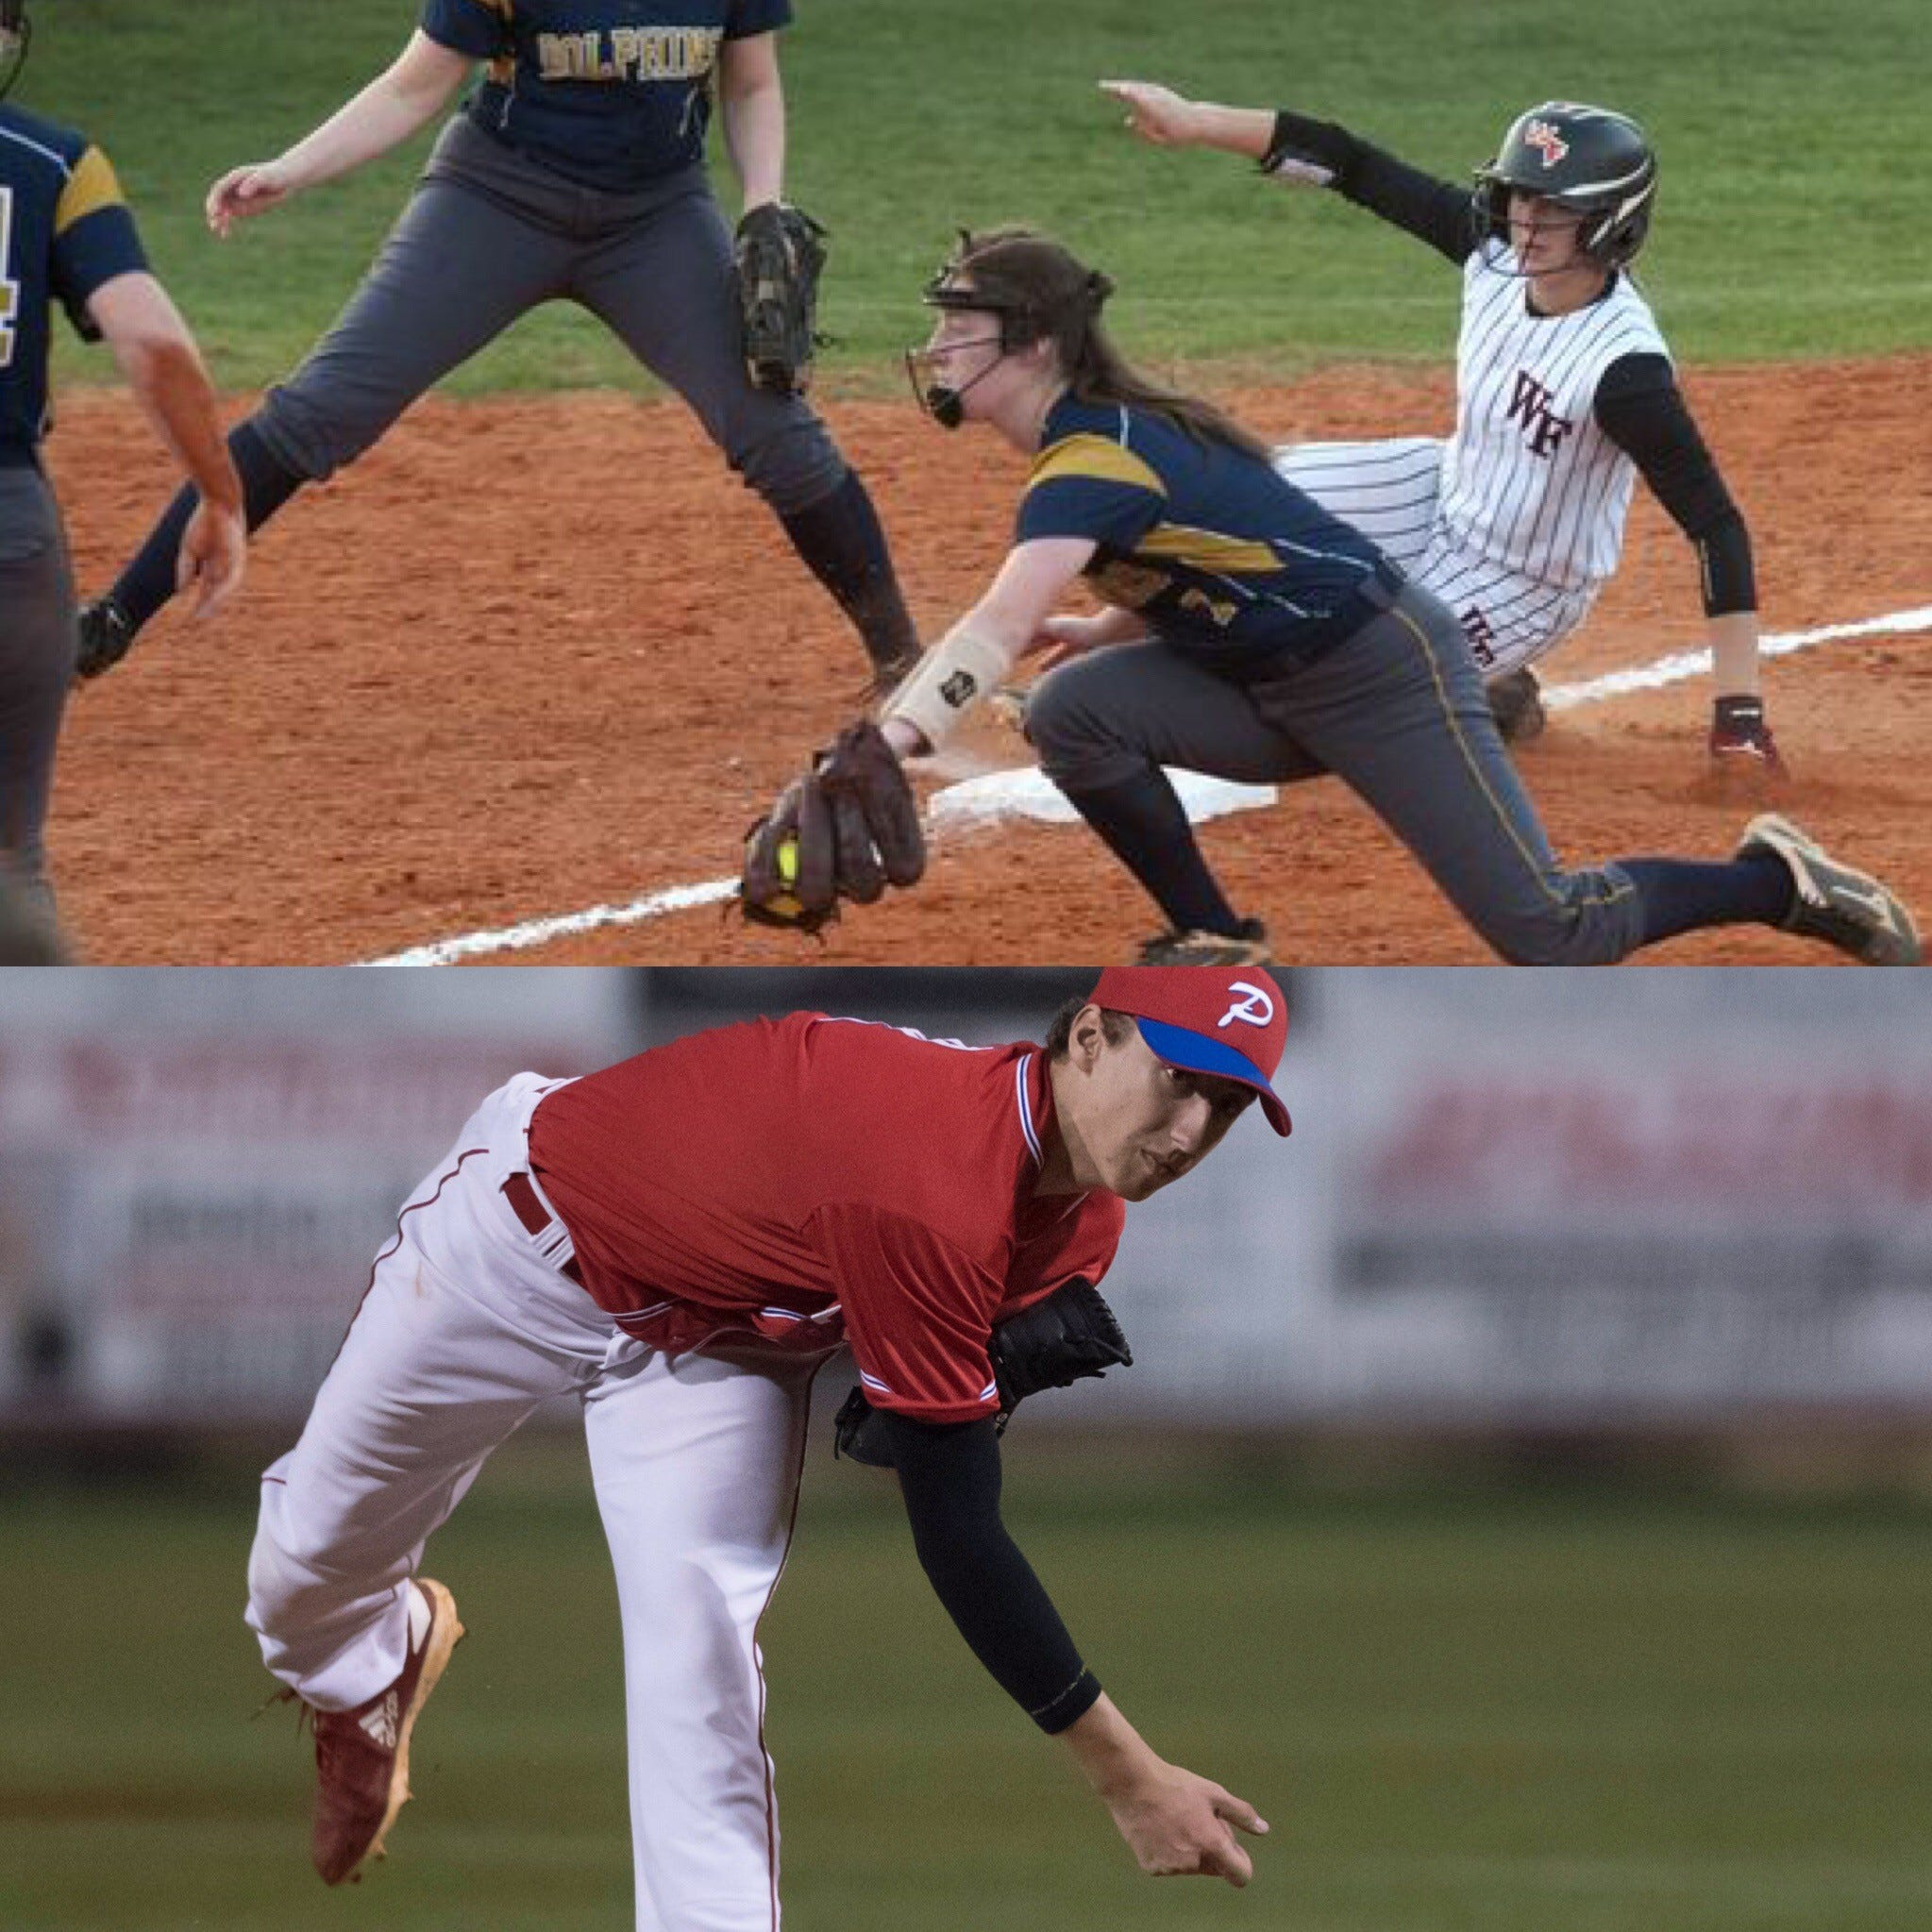 Klemm, Sproat win PNJ Softball, Baseball Player of the Week Honors